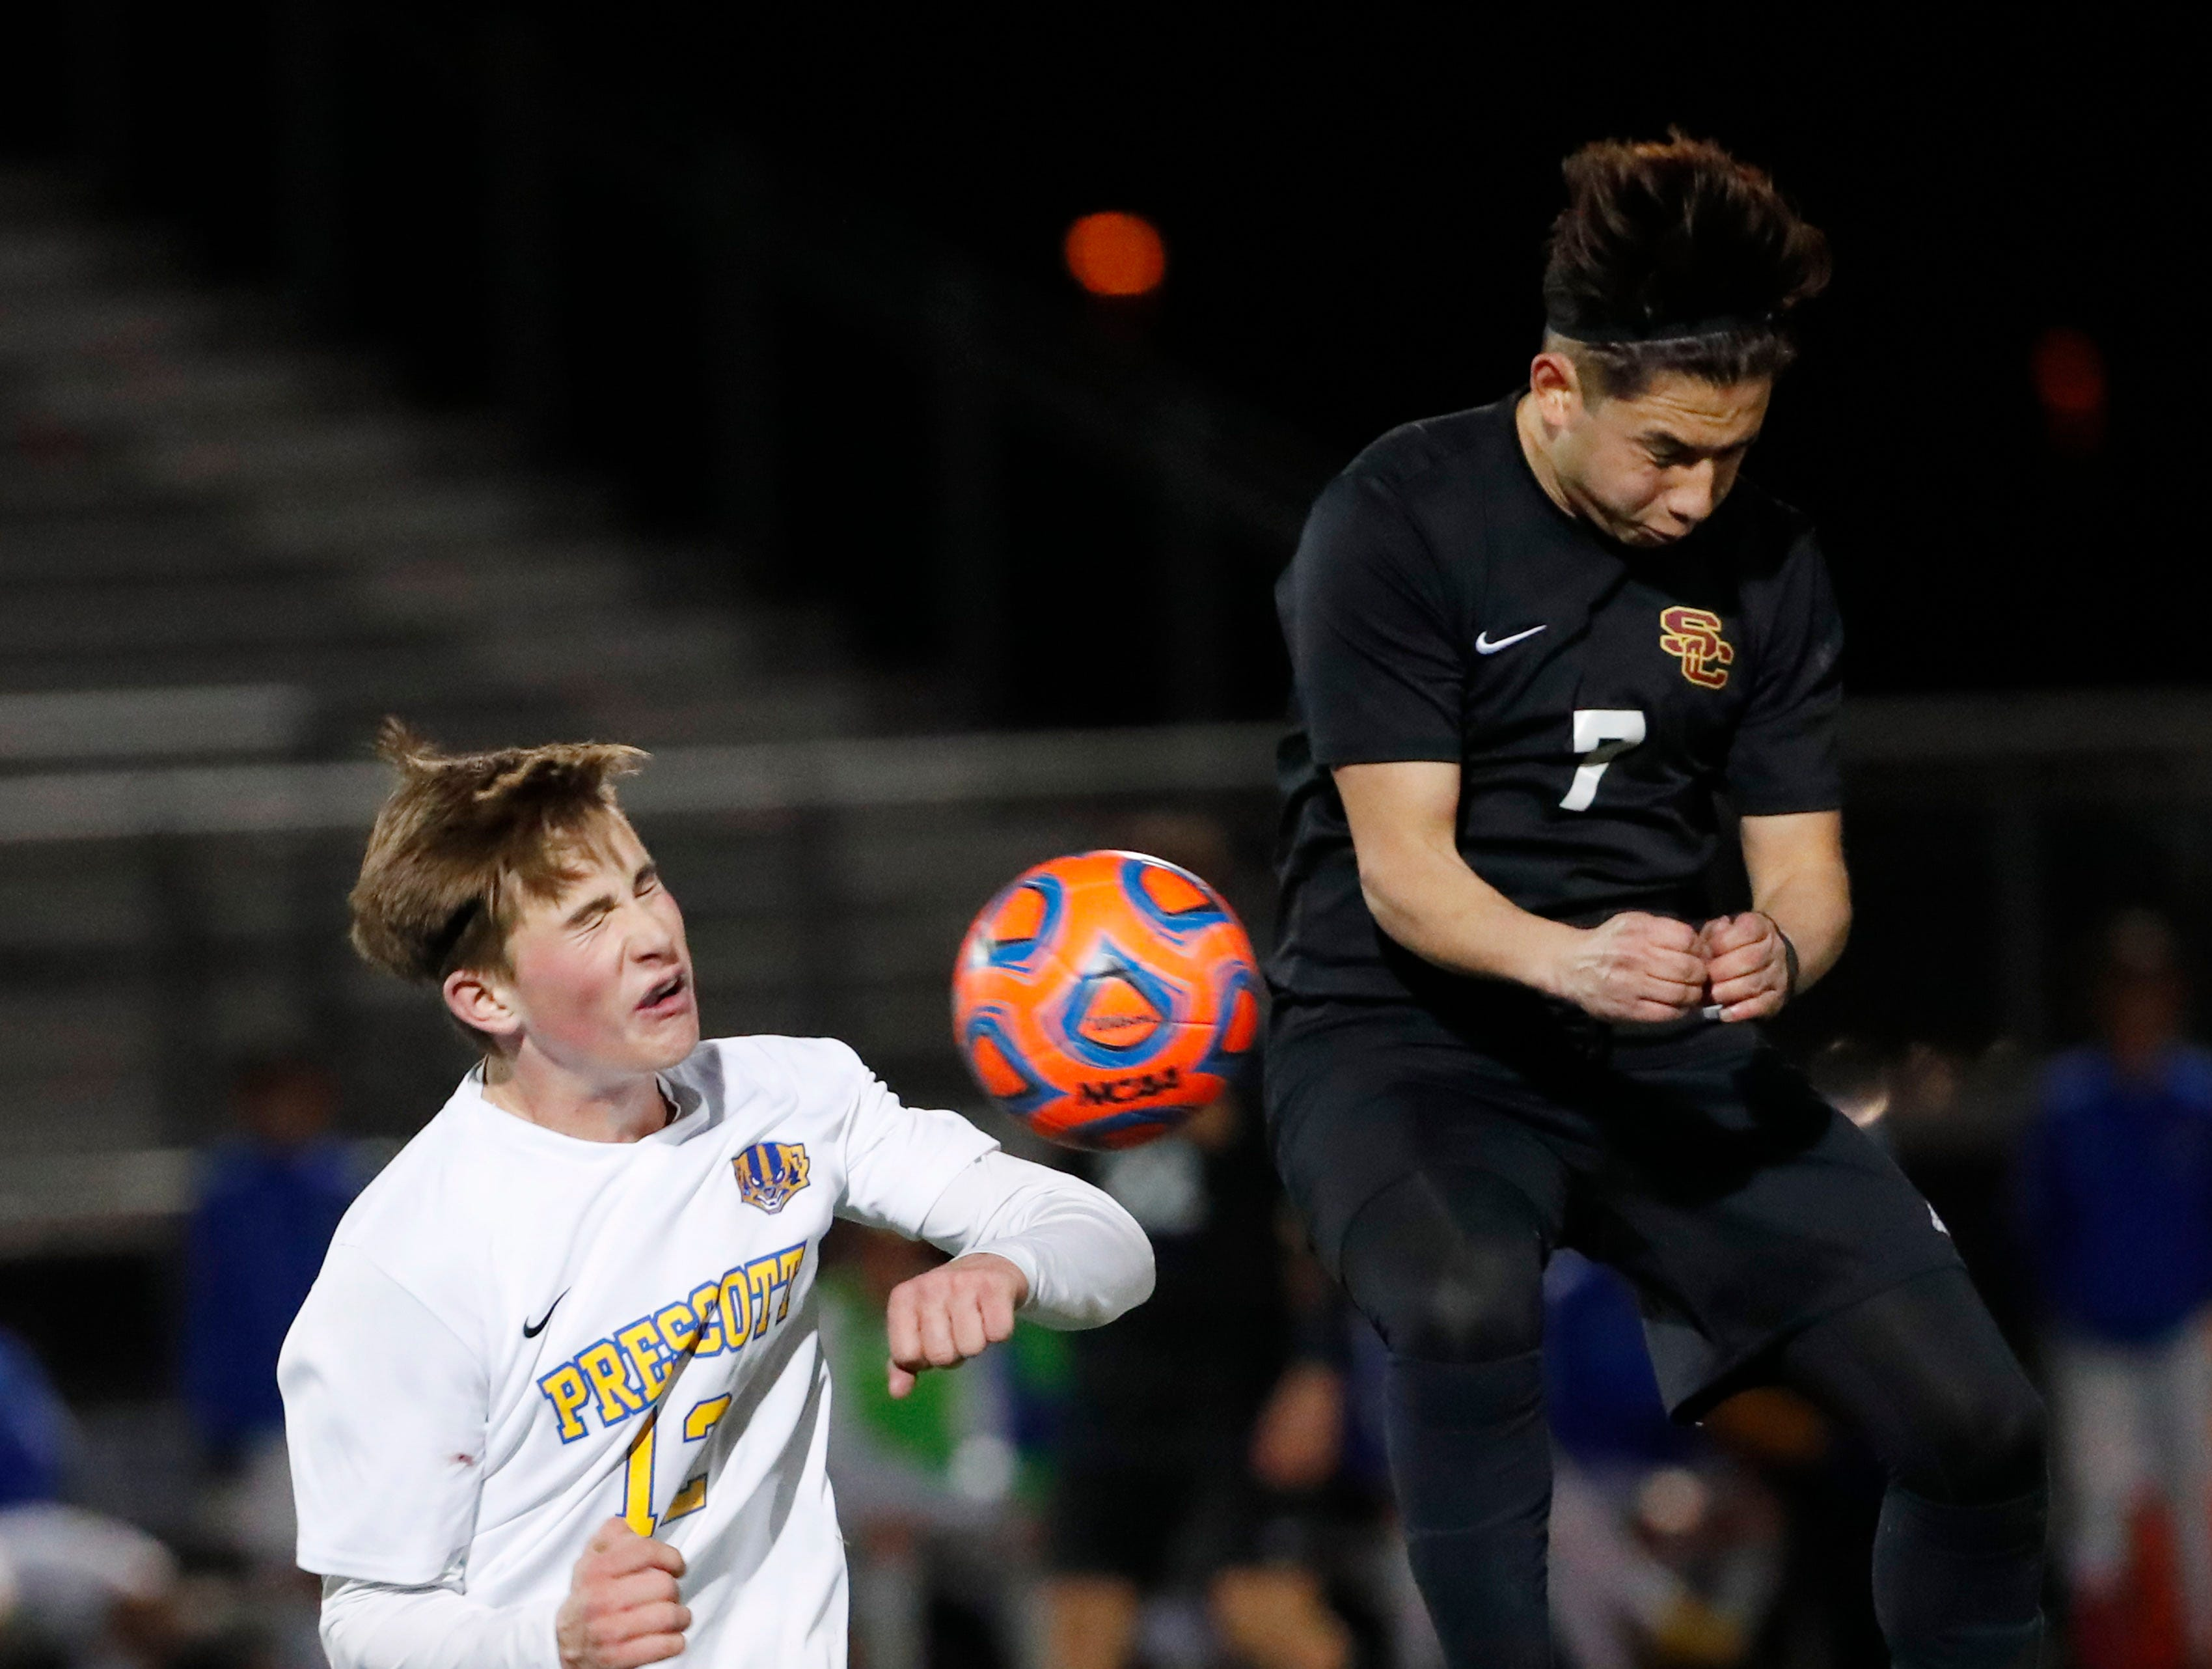 Prescott's Brayden Nelson (12) and Salpointe's Eric Galindo (7) battle for the ball during the Boys 4A State Championship soccer game in Gilbert Feb. 19, 2019.